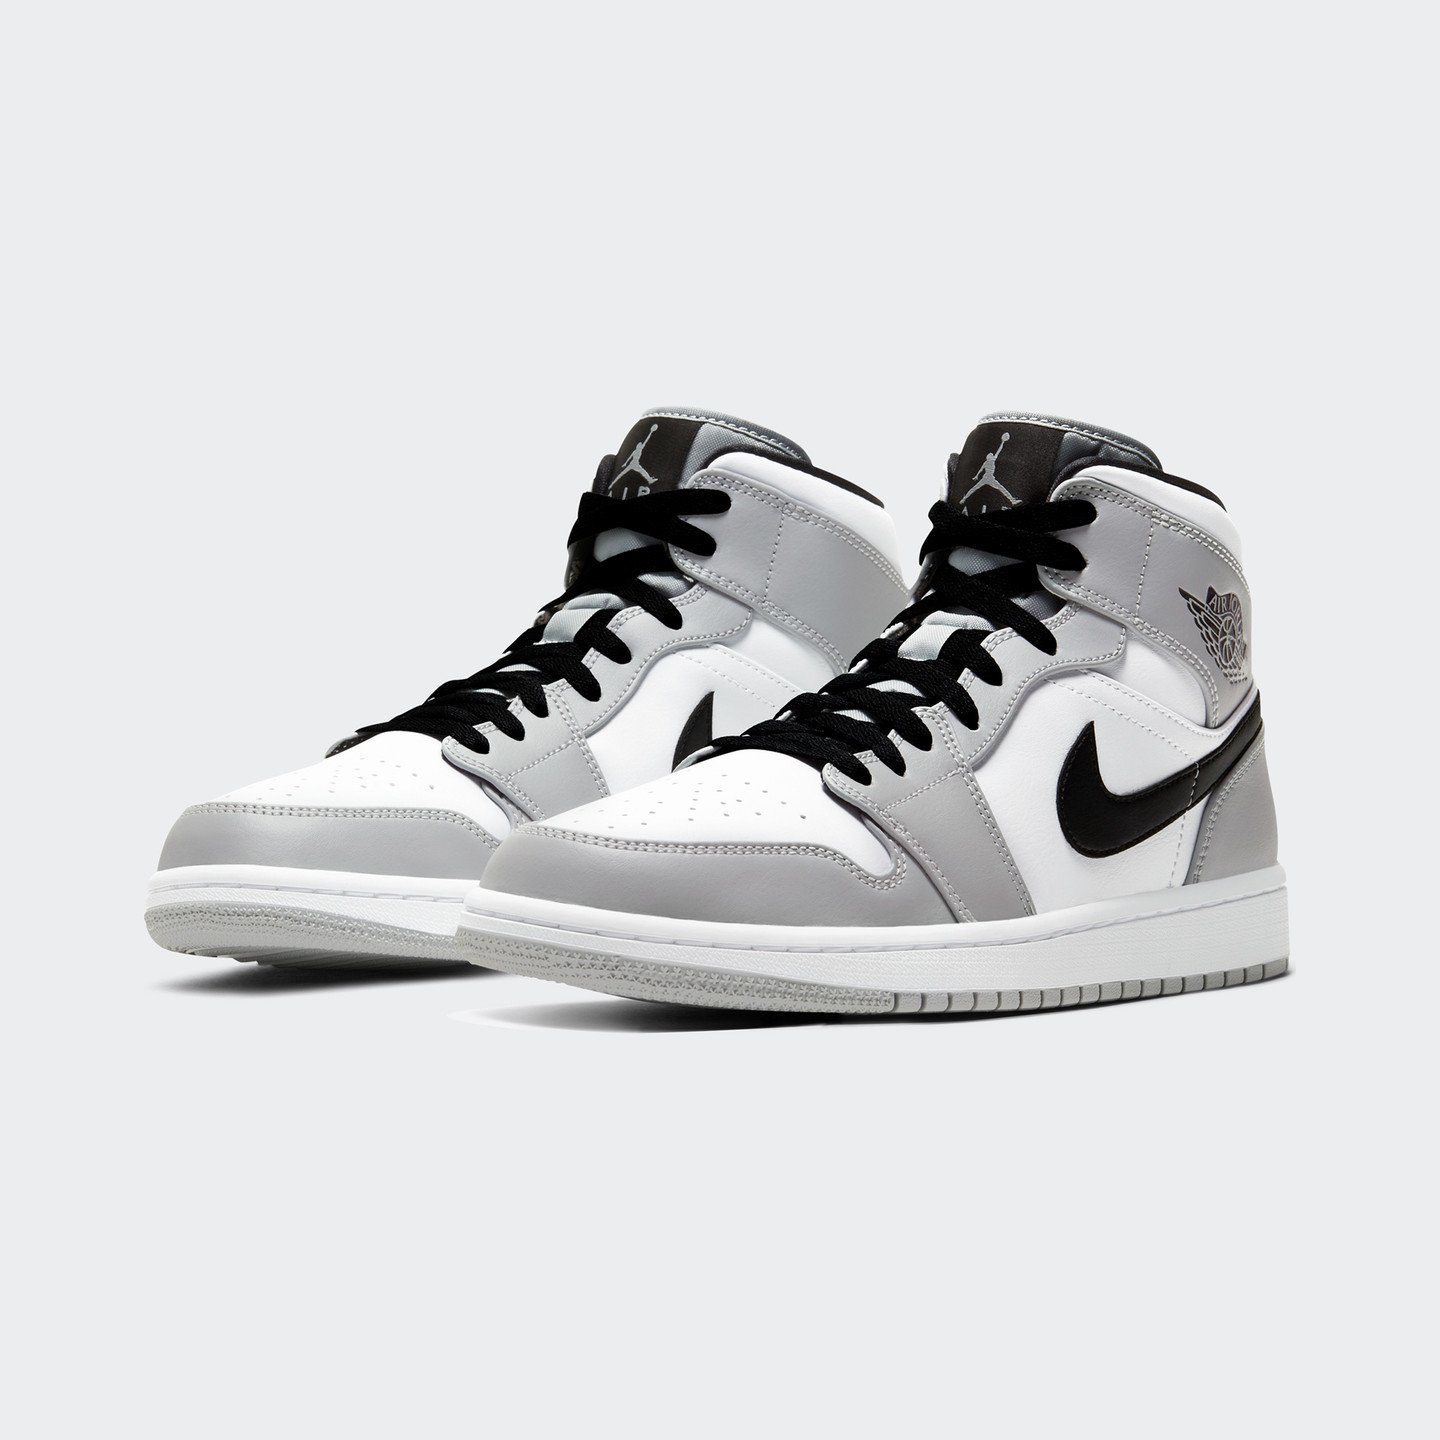 Jordan Air Jordan 1 Mid Light Smoke Grey / Black / White 554724-092